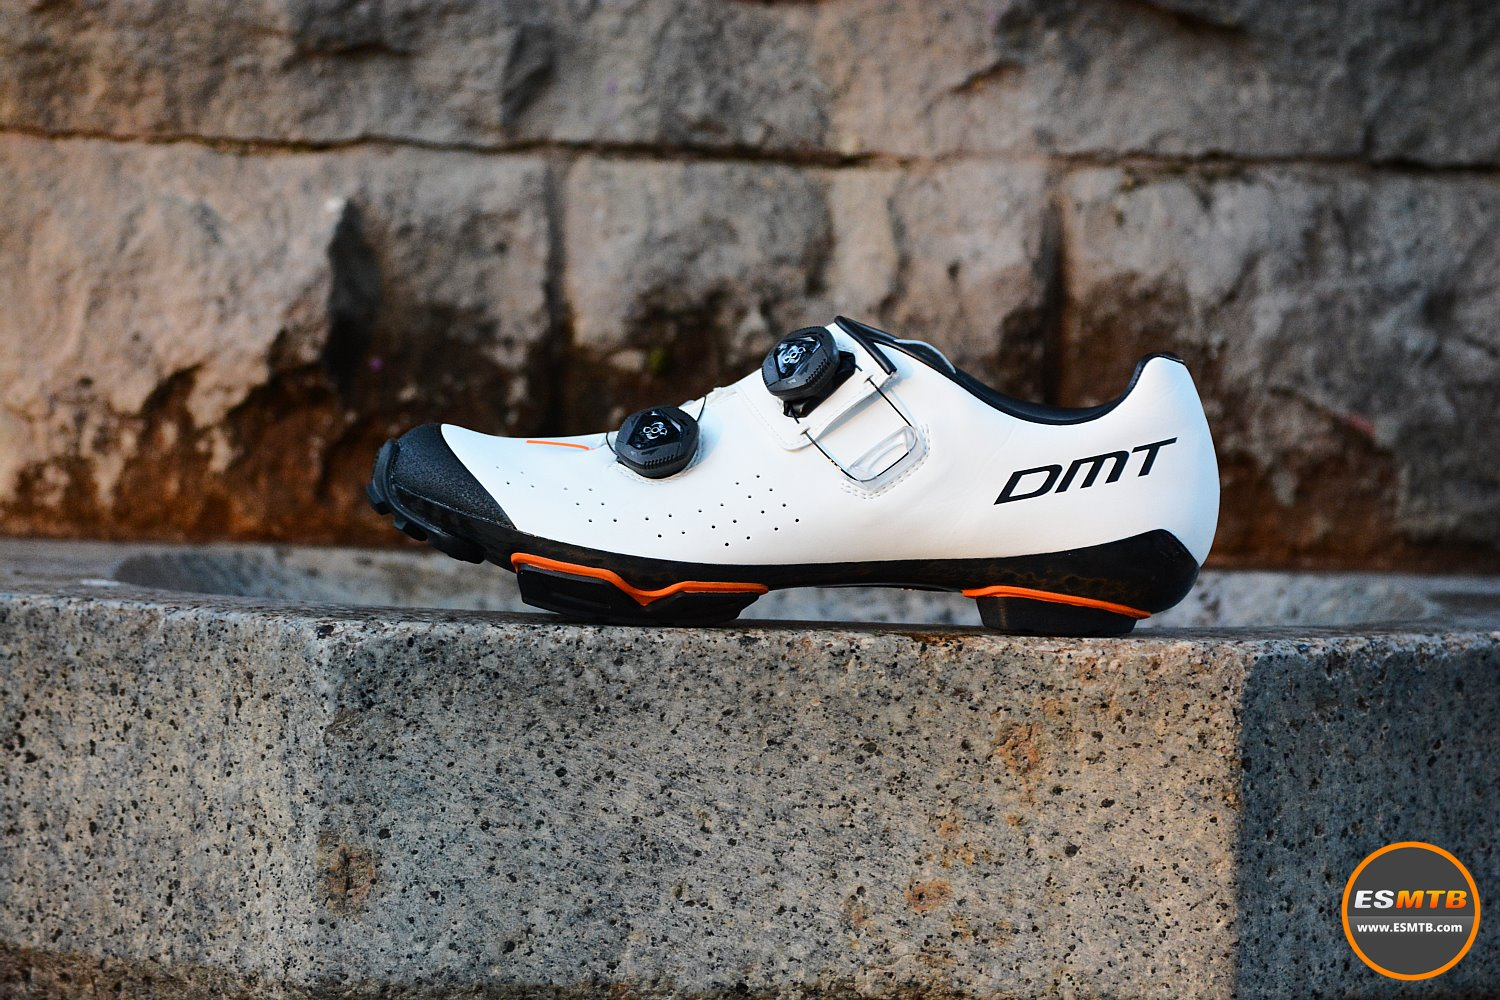 Zapatillas de mountain bike DMT DM1